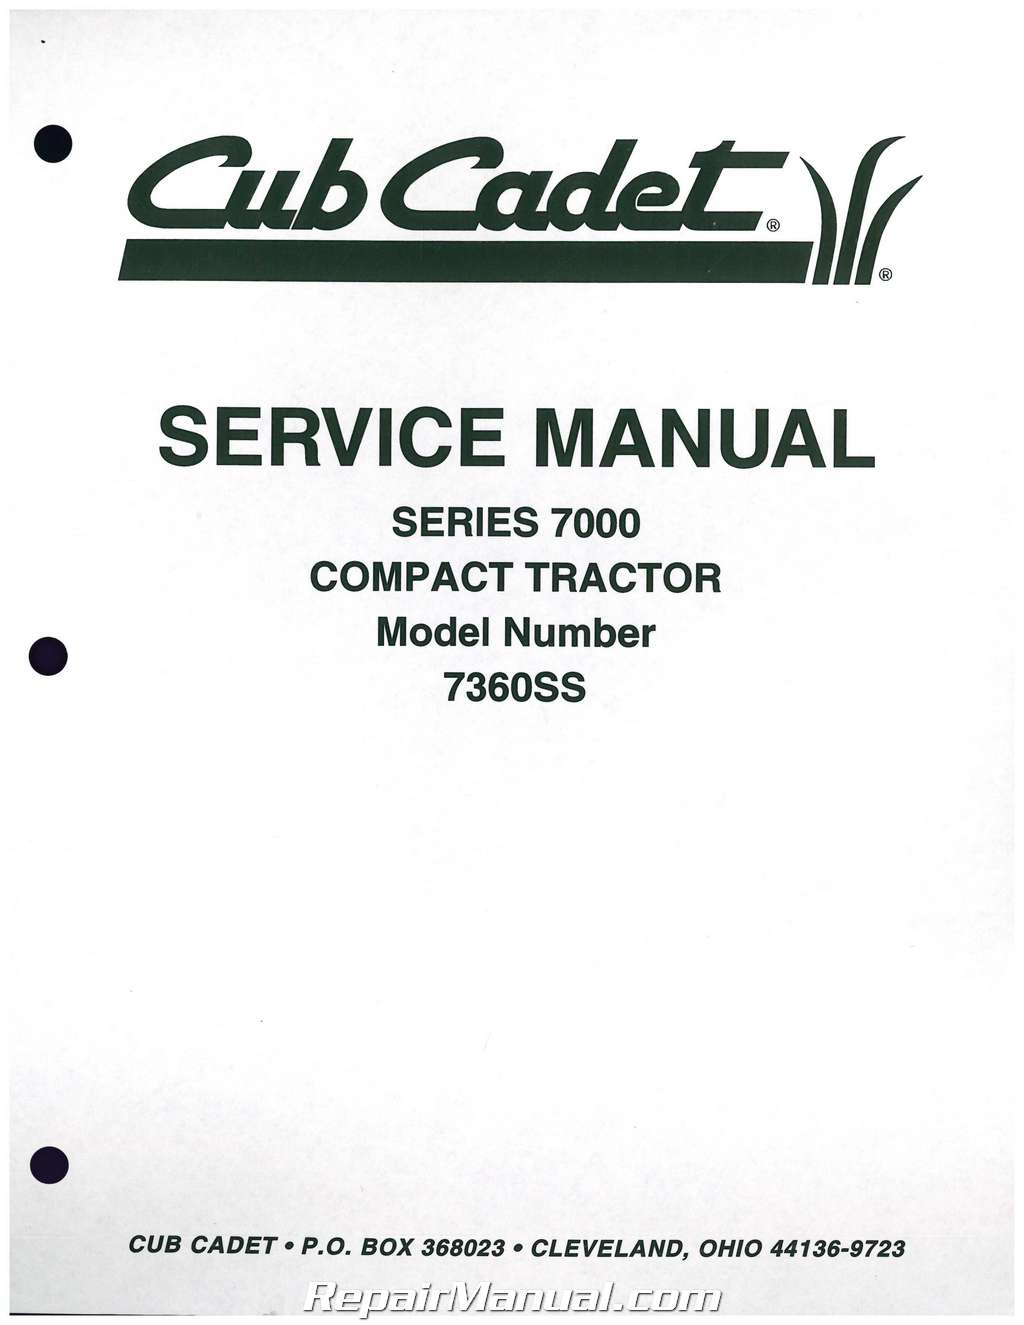 cub cadet 7000 series compact tractor service manual form 772 4207 rh repairmanual com Cub Cadet Electrical Diagram 1862 Cub Cadet Starter